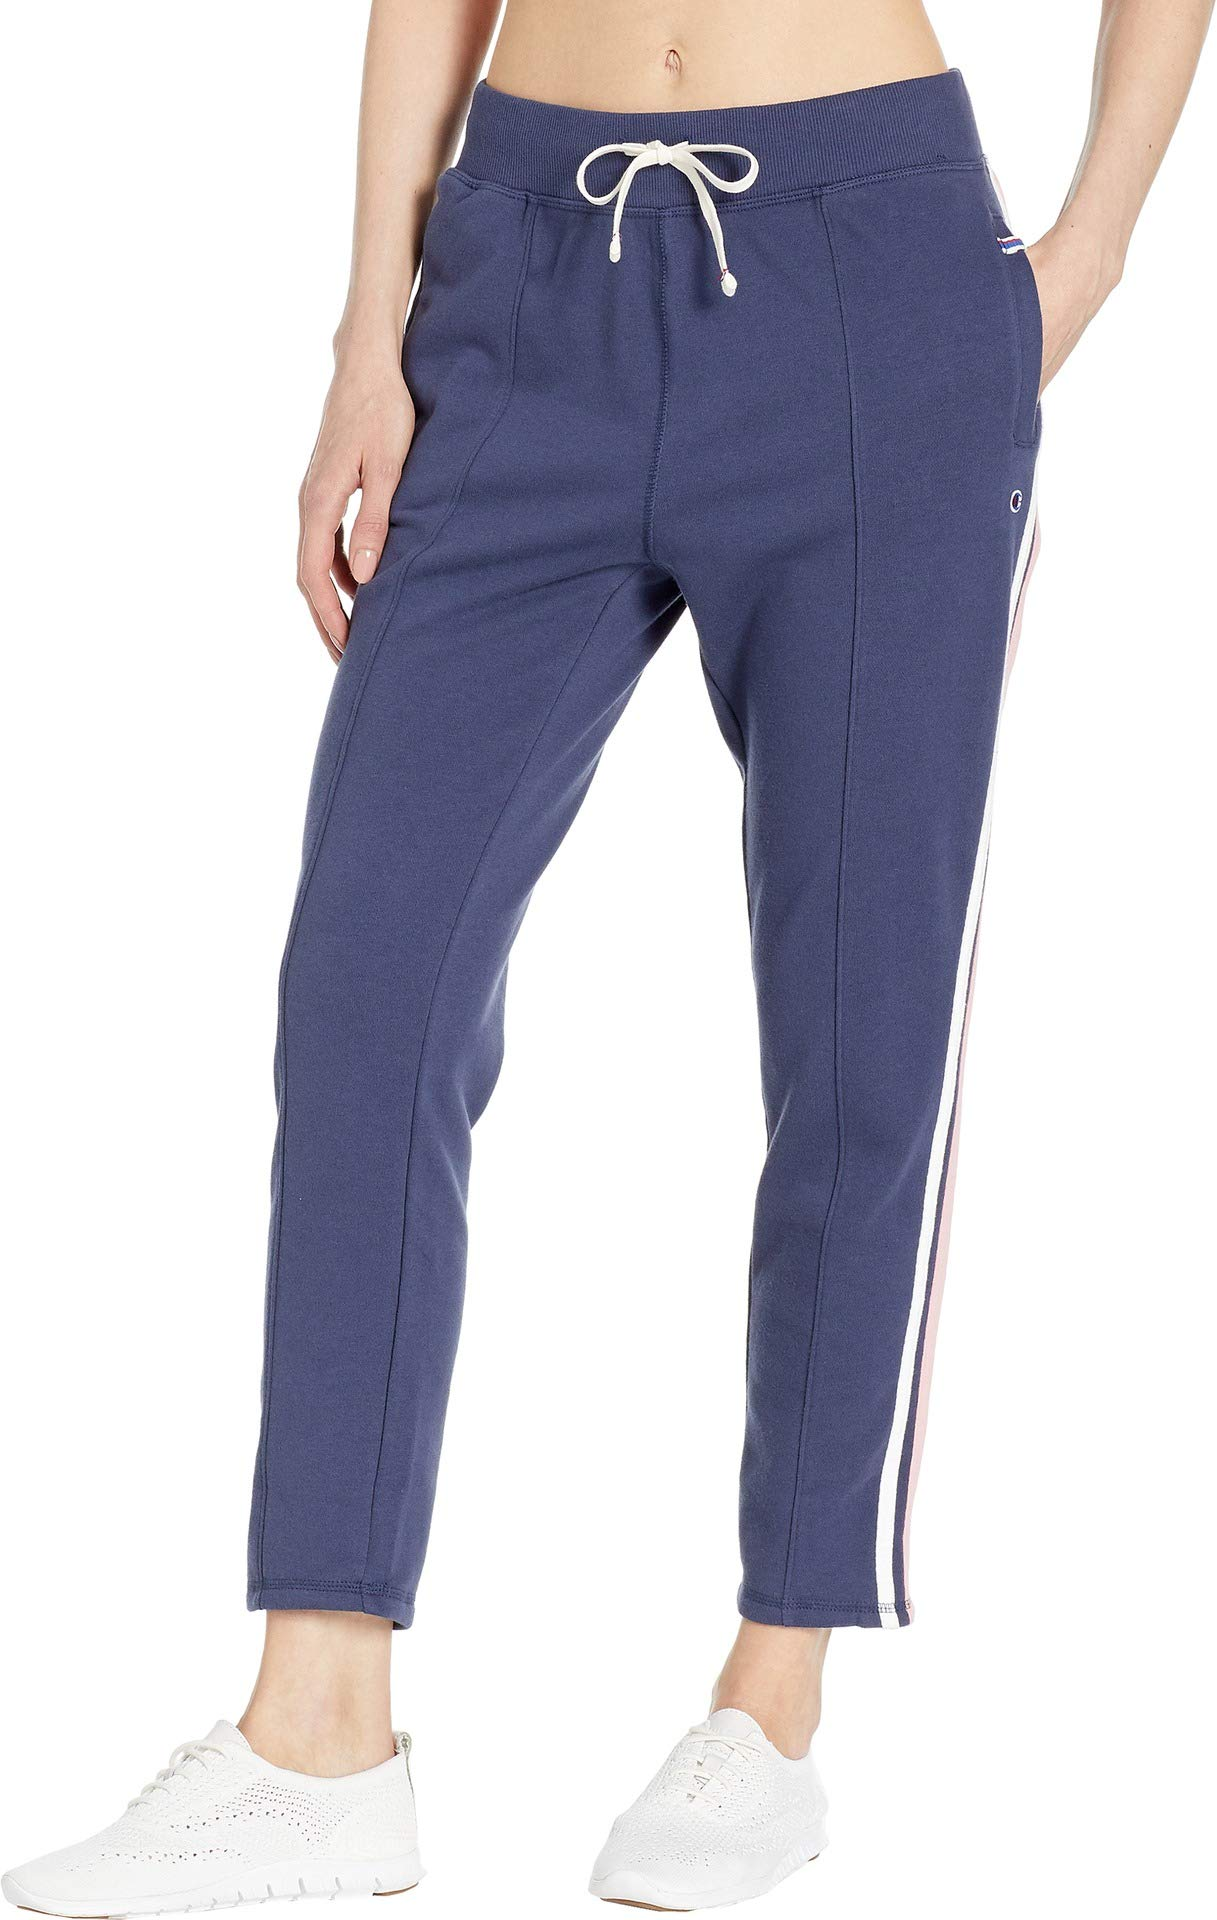 Champion Women's Heritage Warm Up Ankle Pant, Imperial Indigo/Pretty Coral Medium